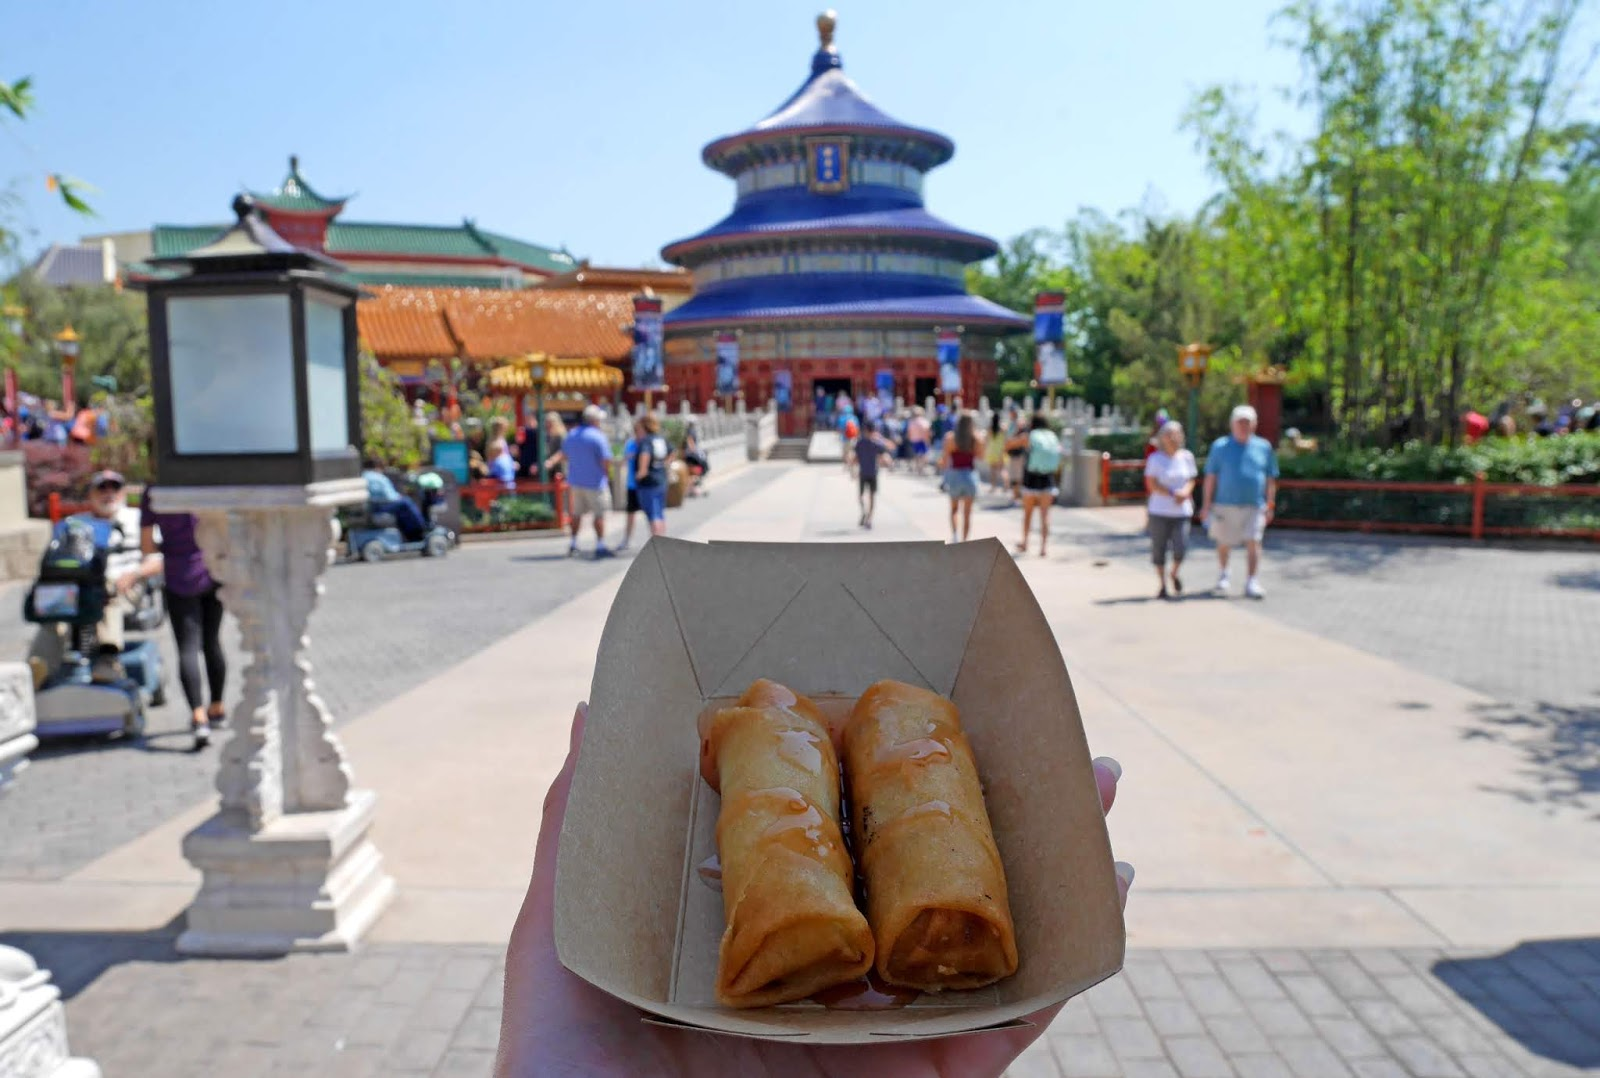 Spring rolls in the China Pavillion, Epcot International Flower and Garden Festival